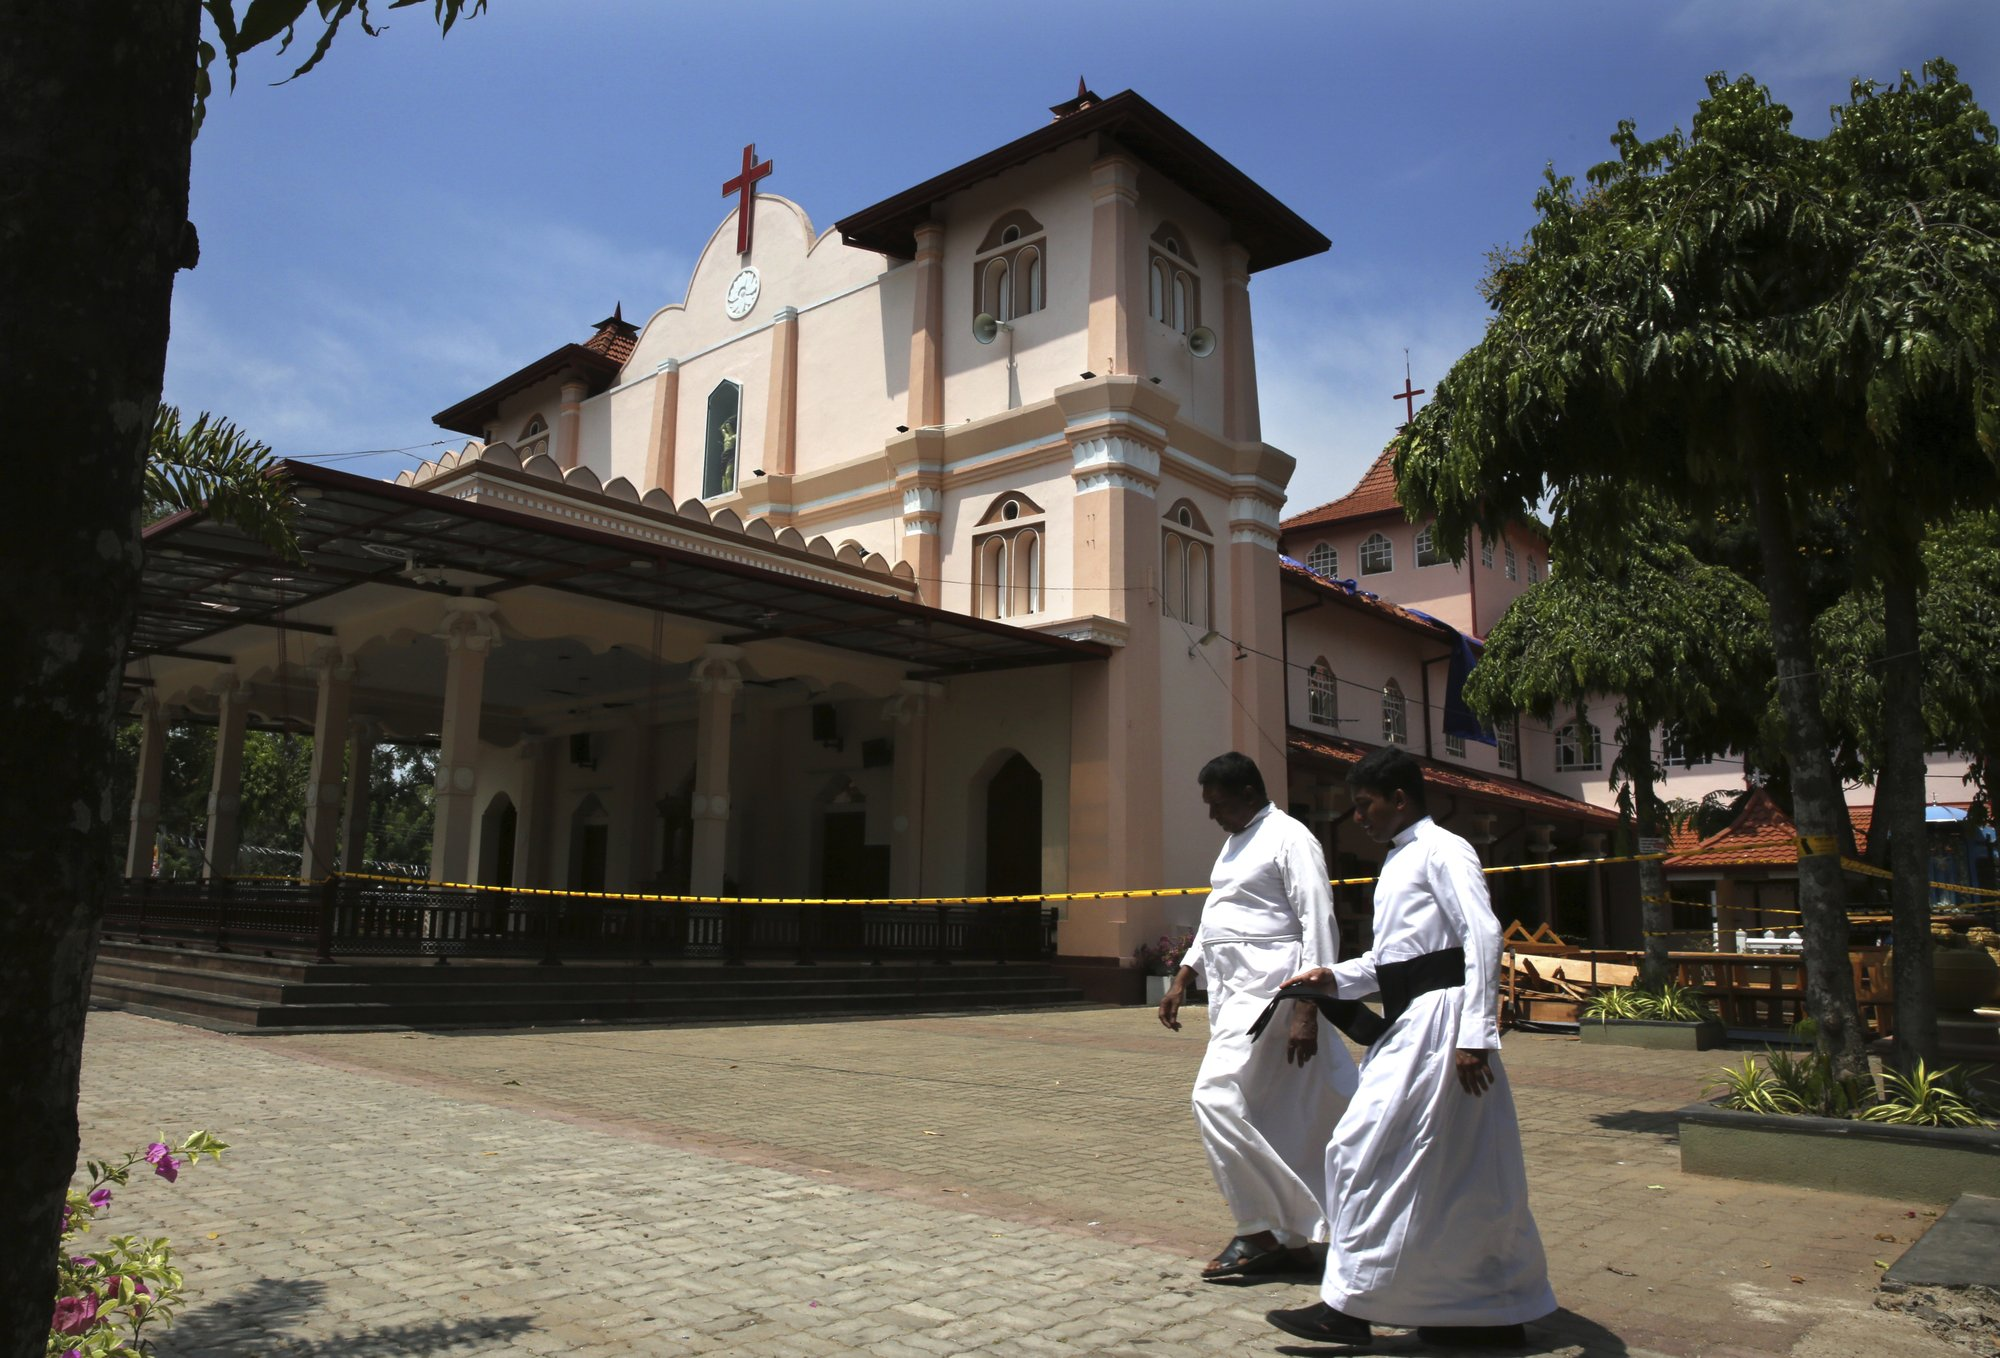 In this Thursday, April 25, 2019 photo, Catholic priests walk outside St. Sebastian's Church, where a suicide bomber blew himself up on Easter Sunday in Negombo, north of Colombo, Sri Lanka. Nearly a week later, the smell of death is everywhere, though the bodies are long gone. From inside, you see destruction wherever you look. But from outside the church, if you ignore the police tape and if you're standing far enough away, you might think nothing had happened there at all. (AP Photo/Manish Swarup)